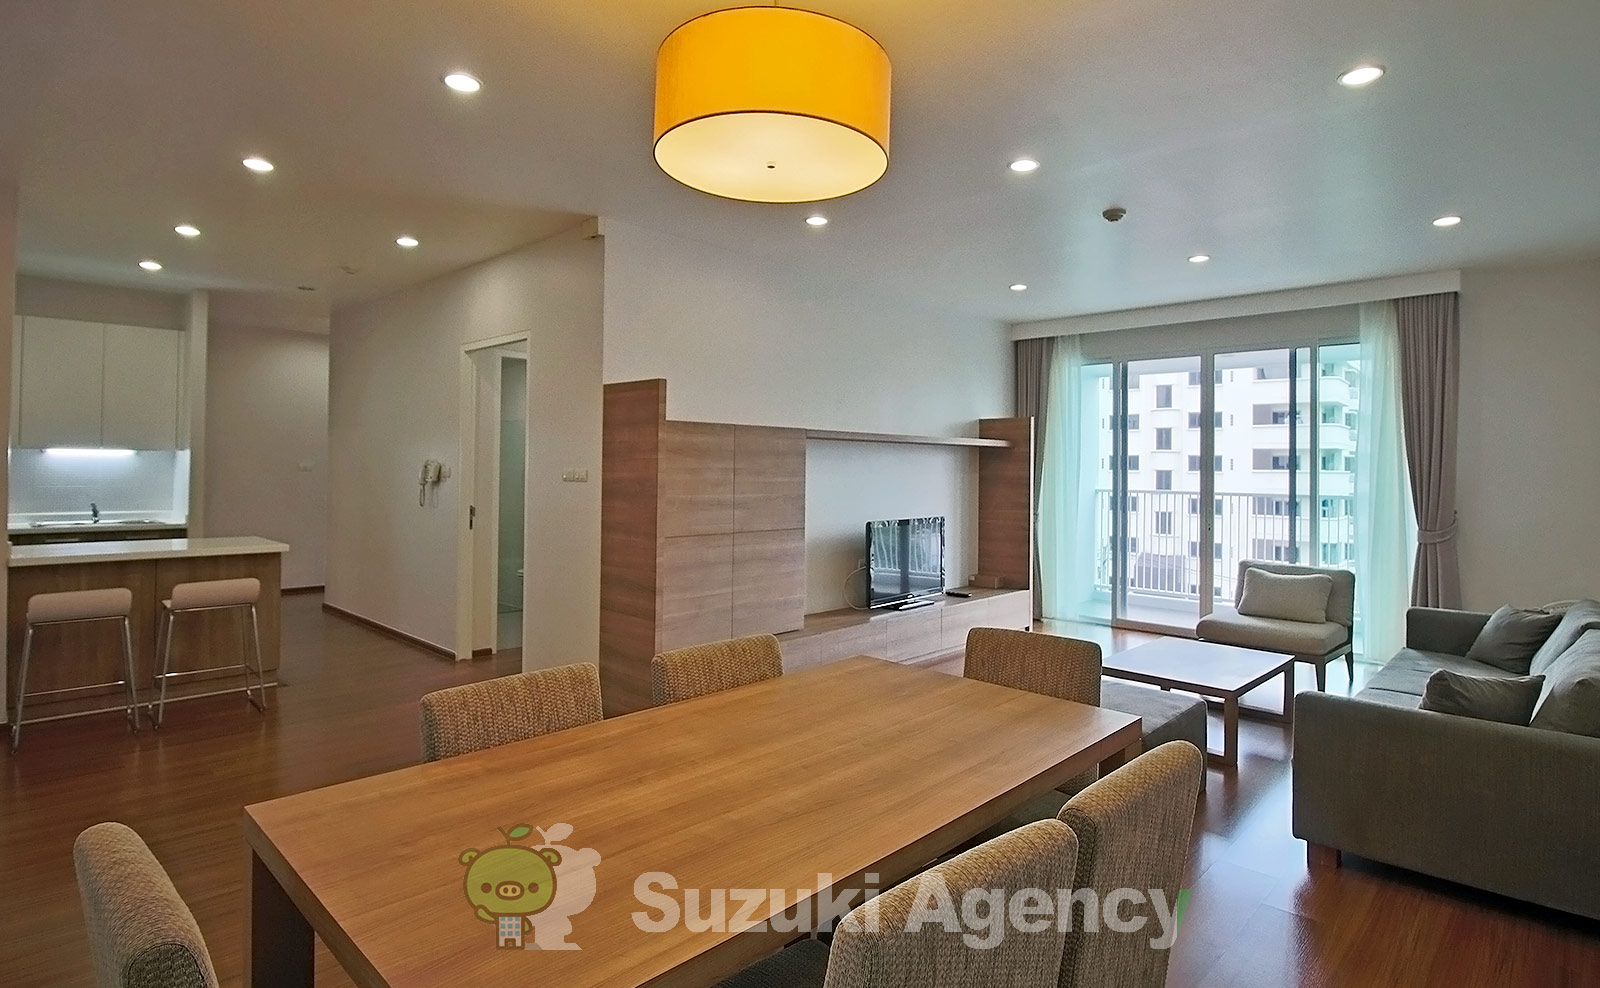 Thonglor 11 Residence:3Bed Room Photos No.1